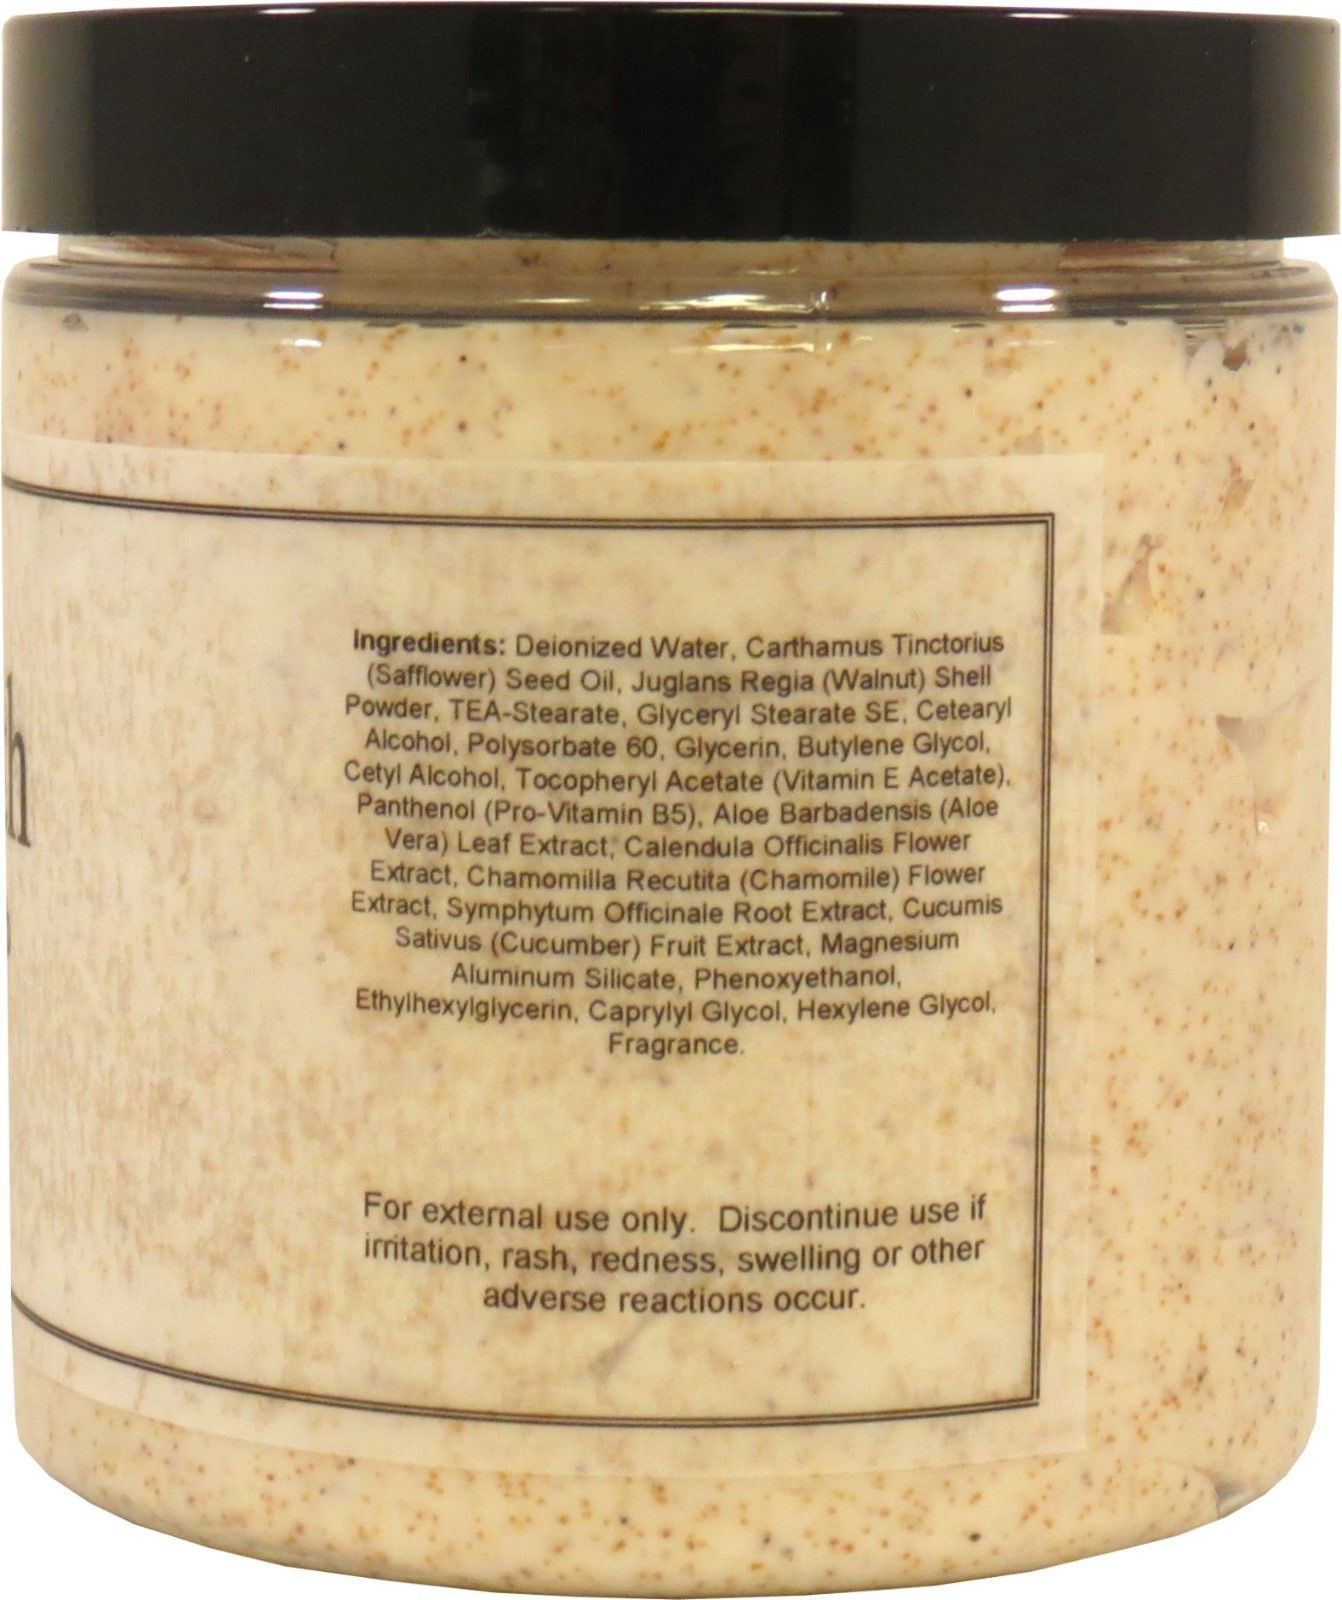 Honeysuckle Walnut Body Scrub